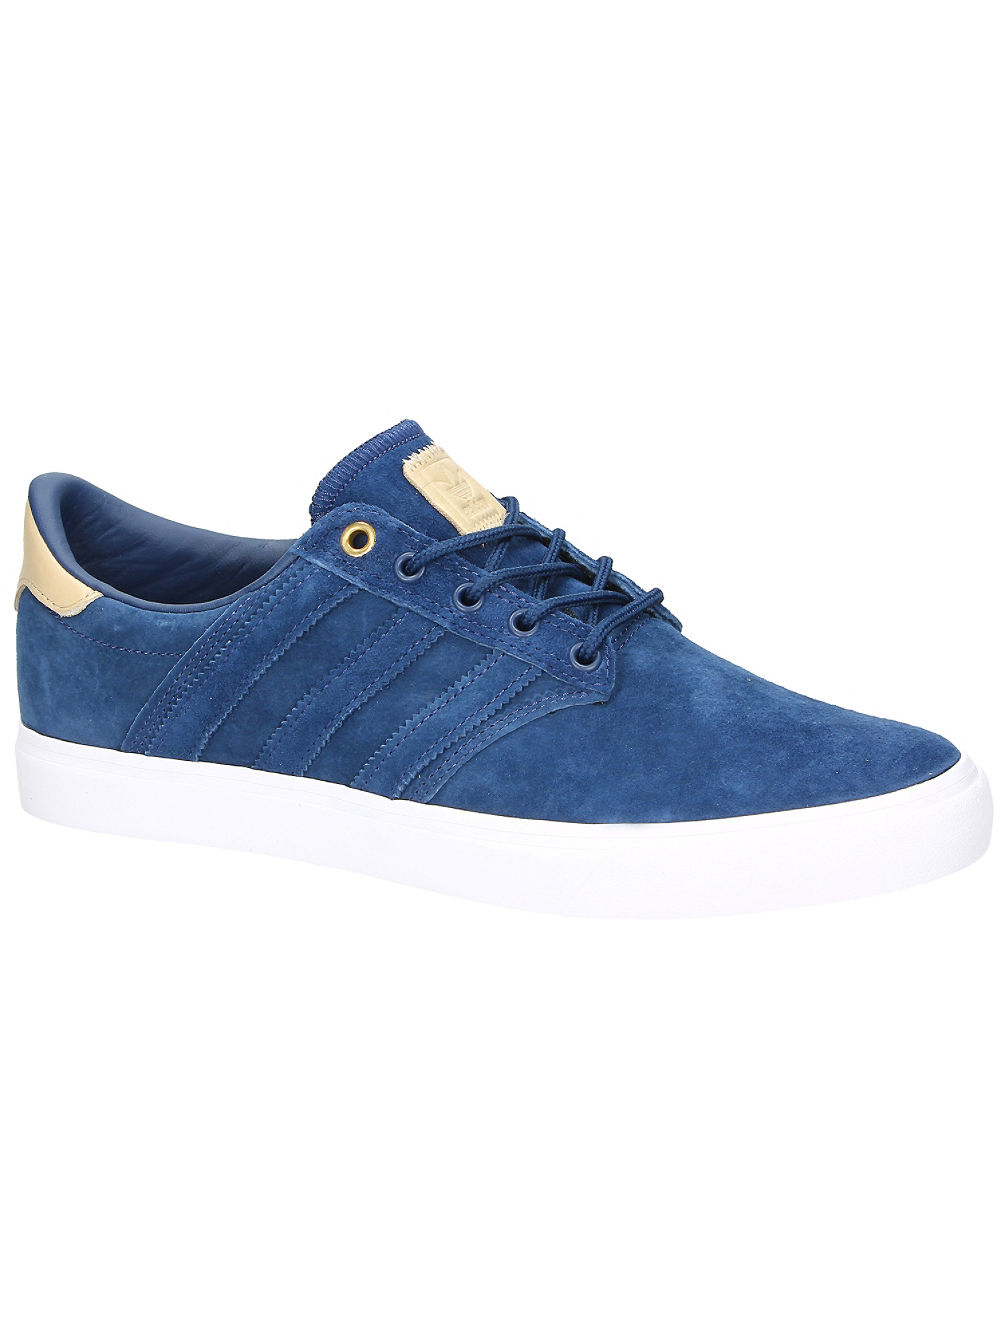 Seeley Premiere Classified Skate Shoes